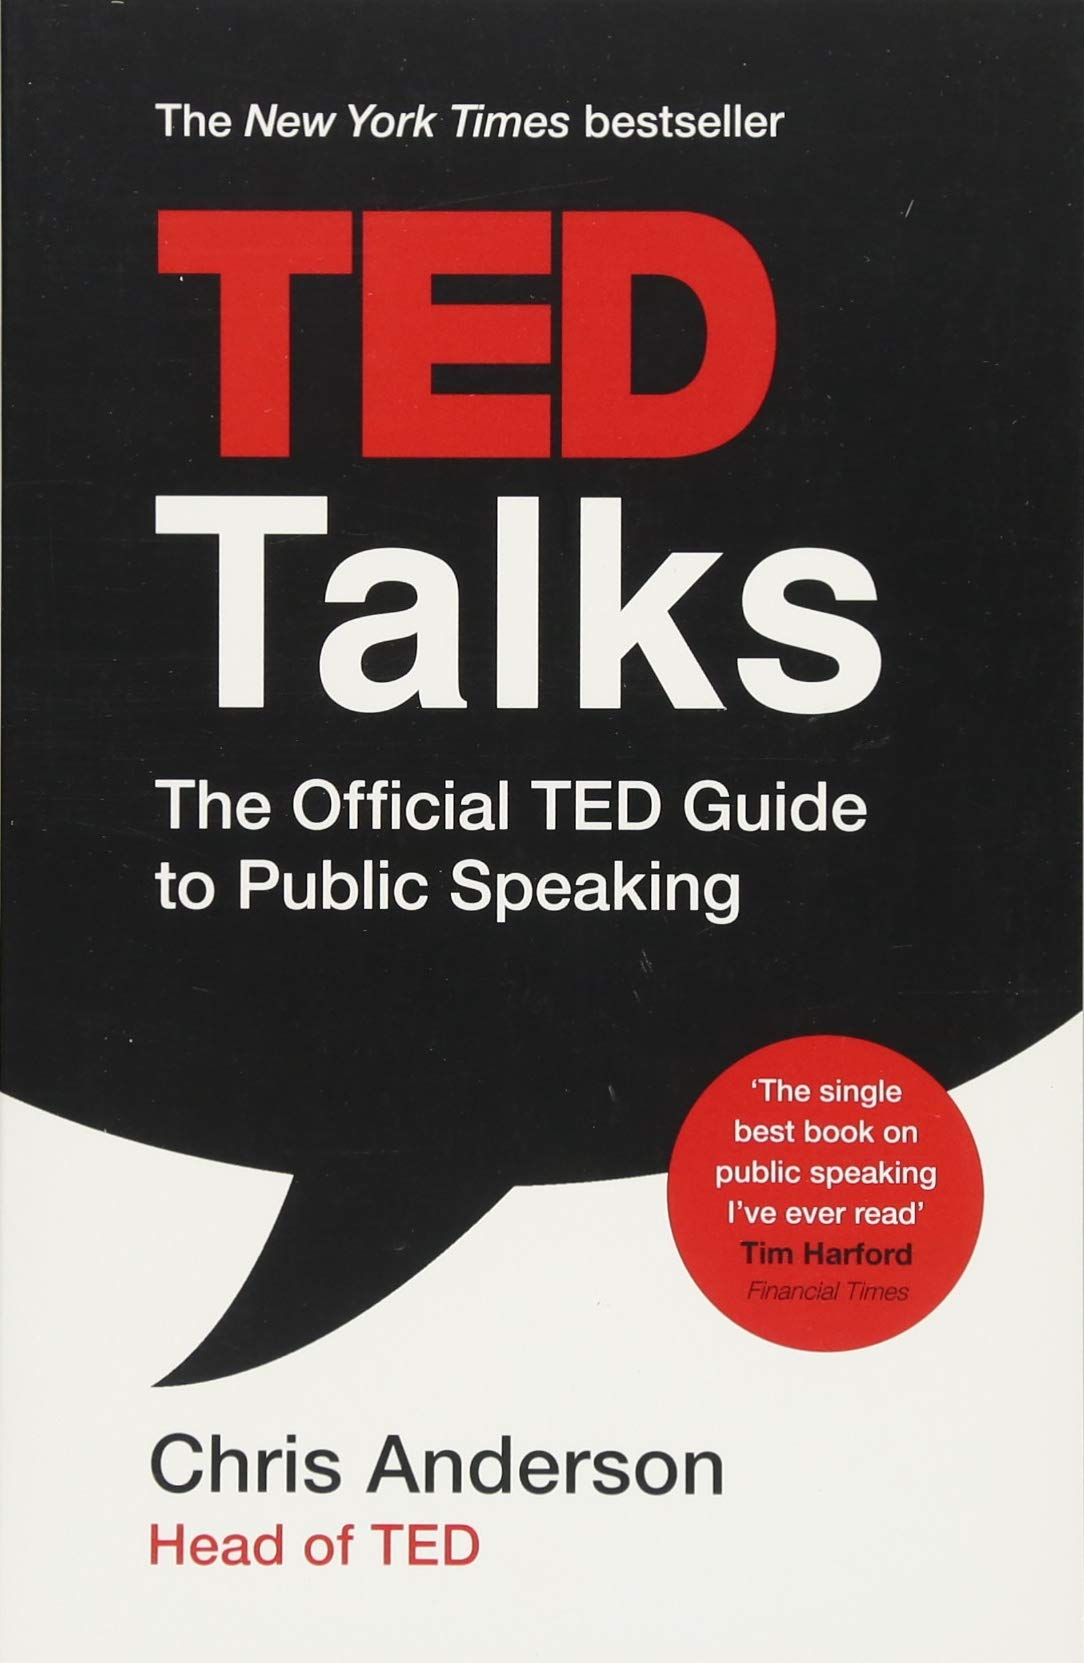 📖 TED Talks: The official TED guide to public speaking